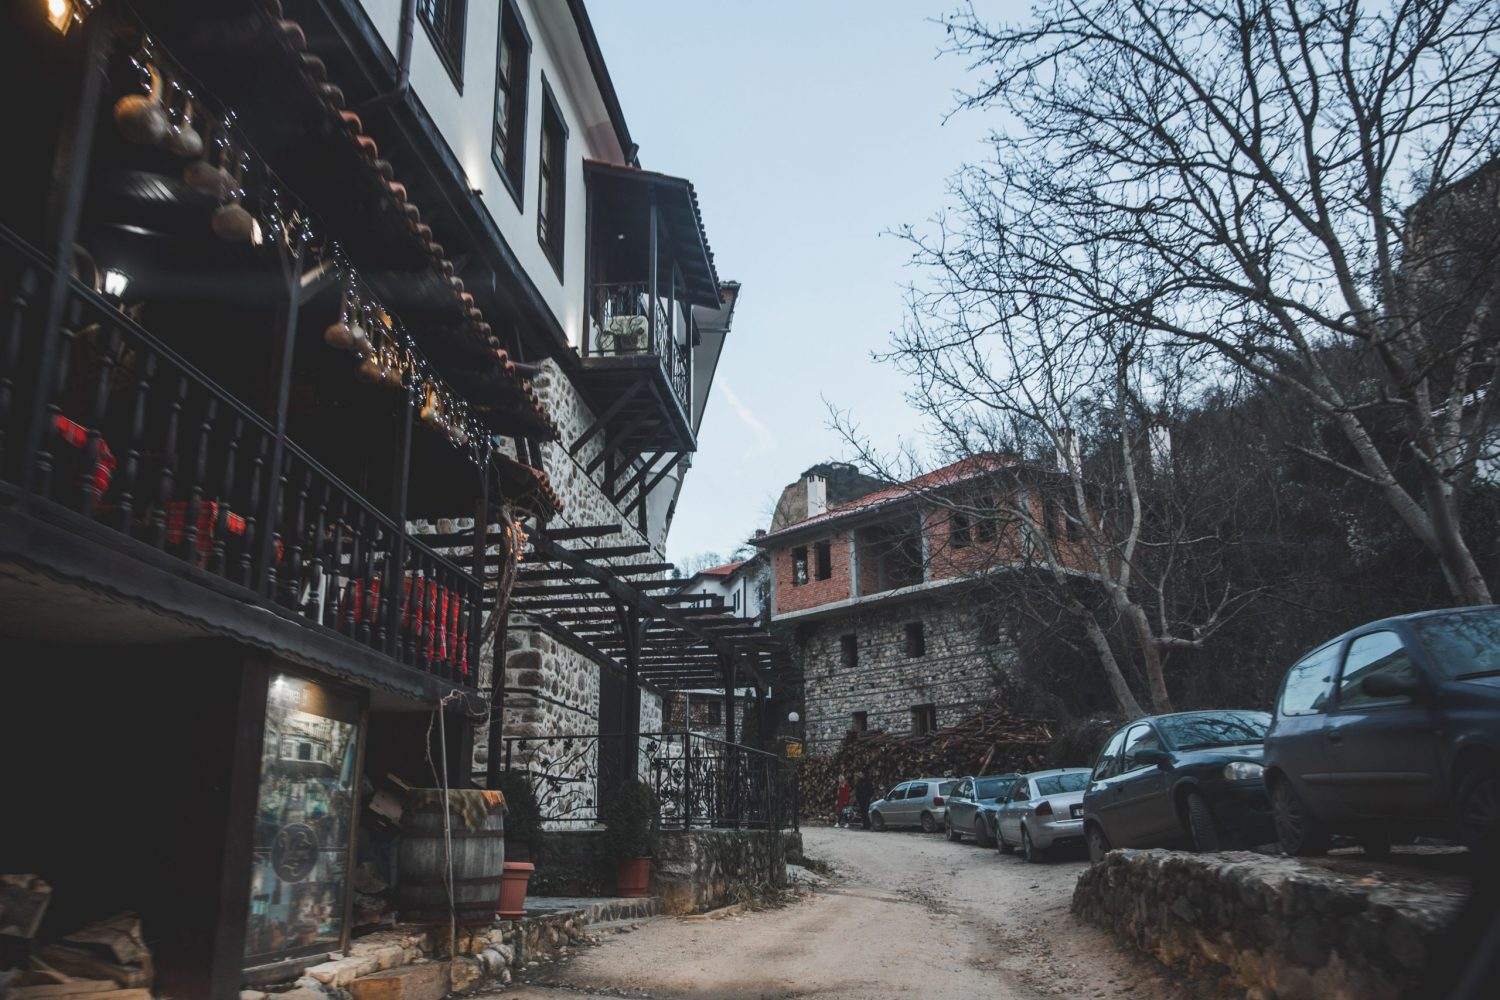 The main street in Melnik, Bulgaria is lined with shops and restaurants.